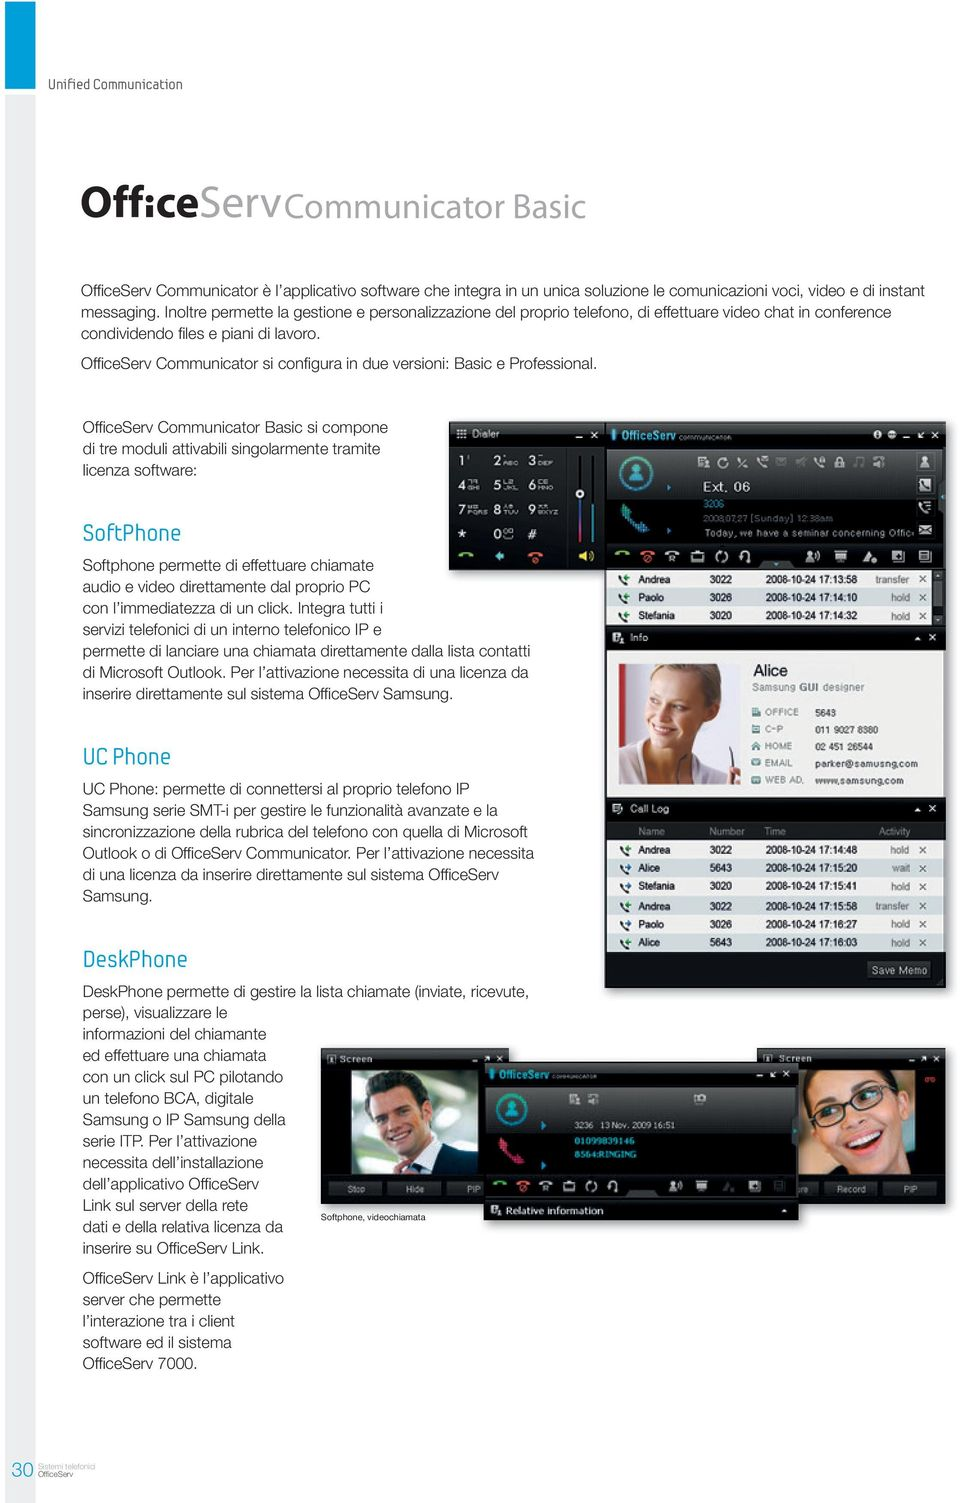 OfficeServ Communicator si configura in due versioni: Basic e Professional.